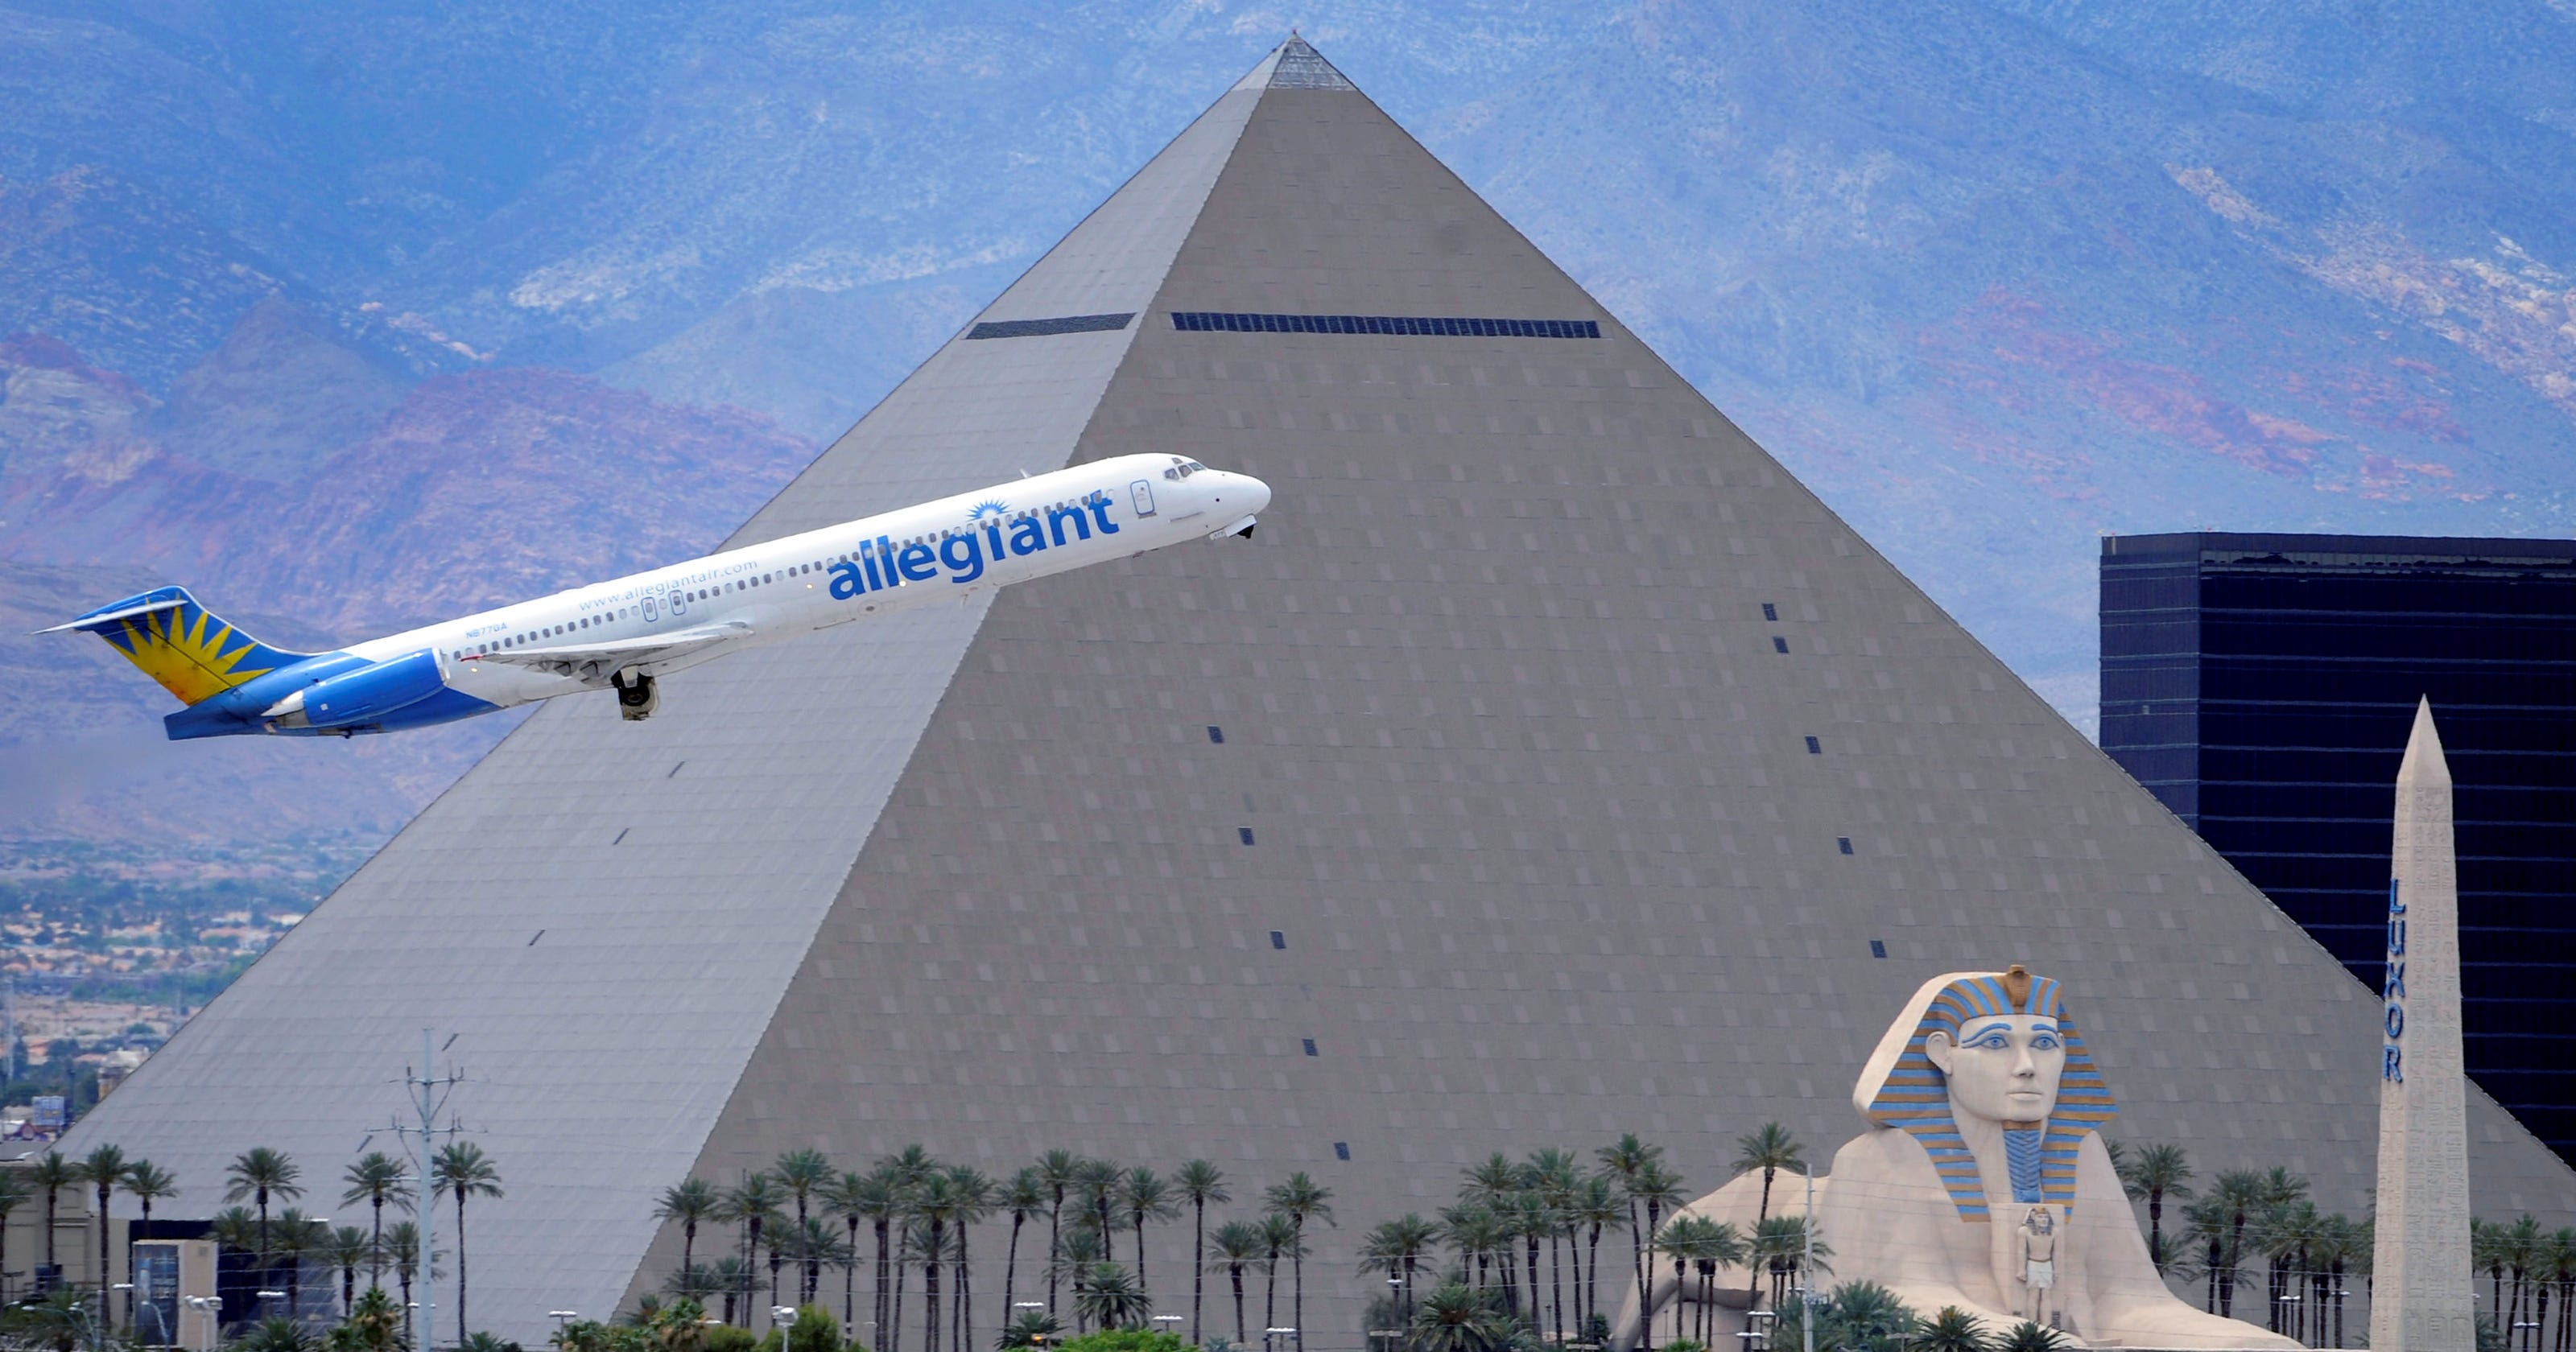 1372424688000-AP-Allegiant-Air-1306280940_16_9 Job From Home For Las on jobs money, work at home, fulfilling jobs home, bring jobs home, jobs family, full-time jobs home, jobs at home,